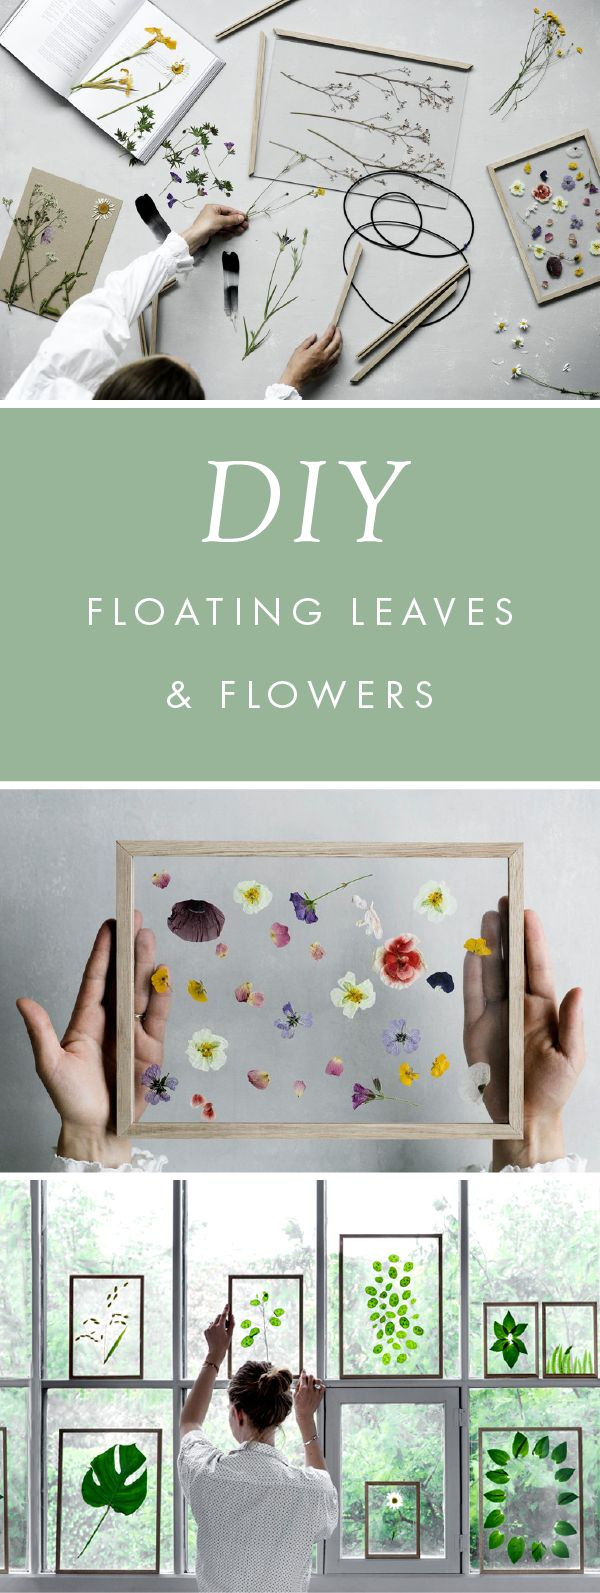 Outstanding Nice Diy Gift Idea Minimalist Framed Floating Leaves Flowers By Www Dana Home Dec The Post